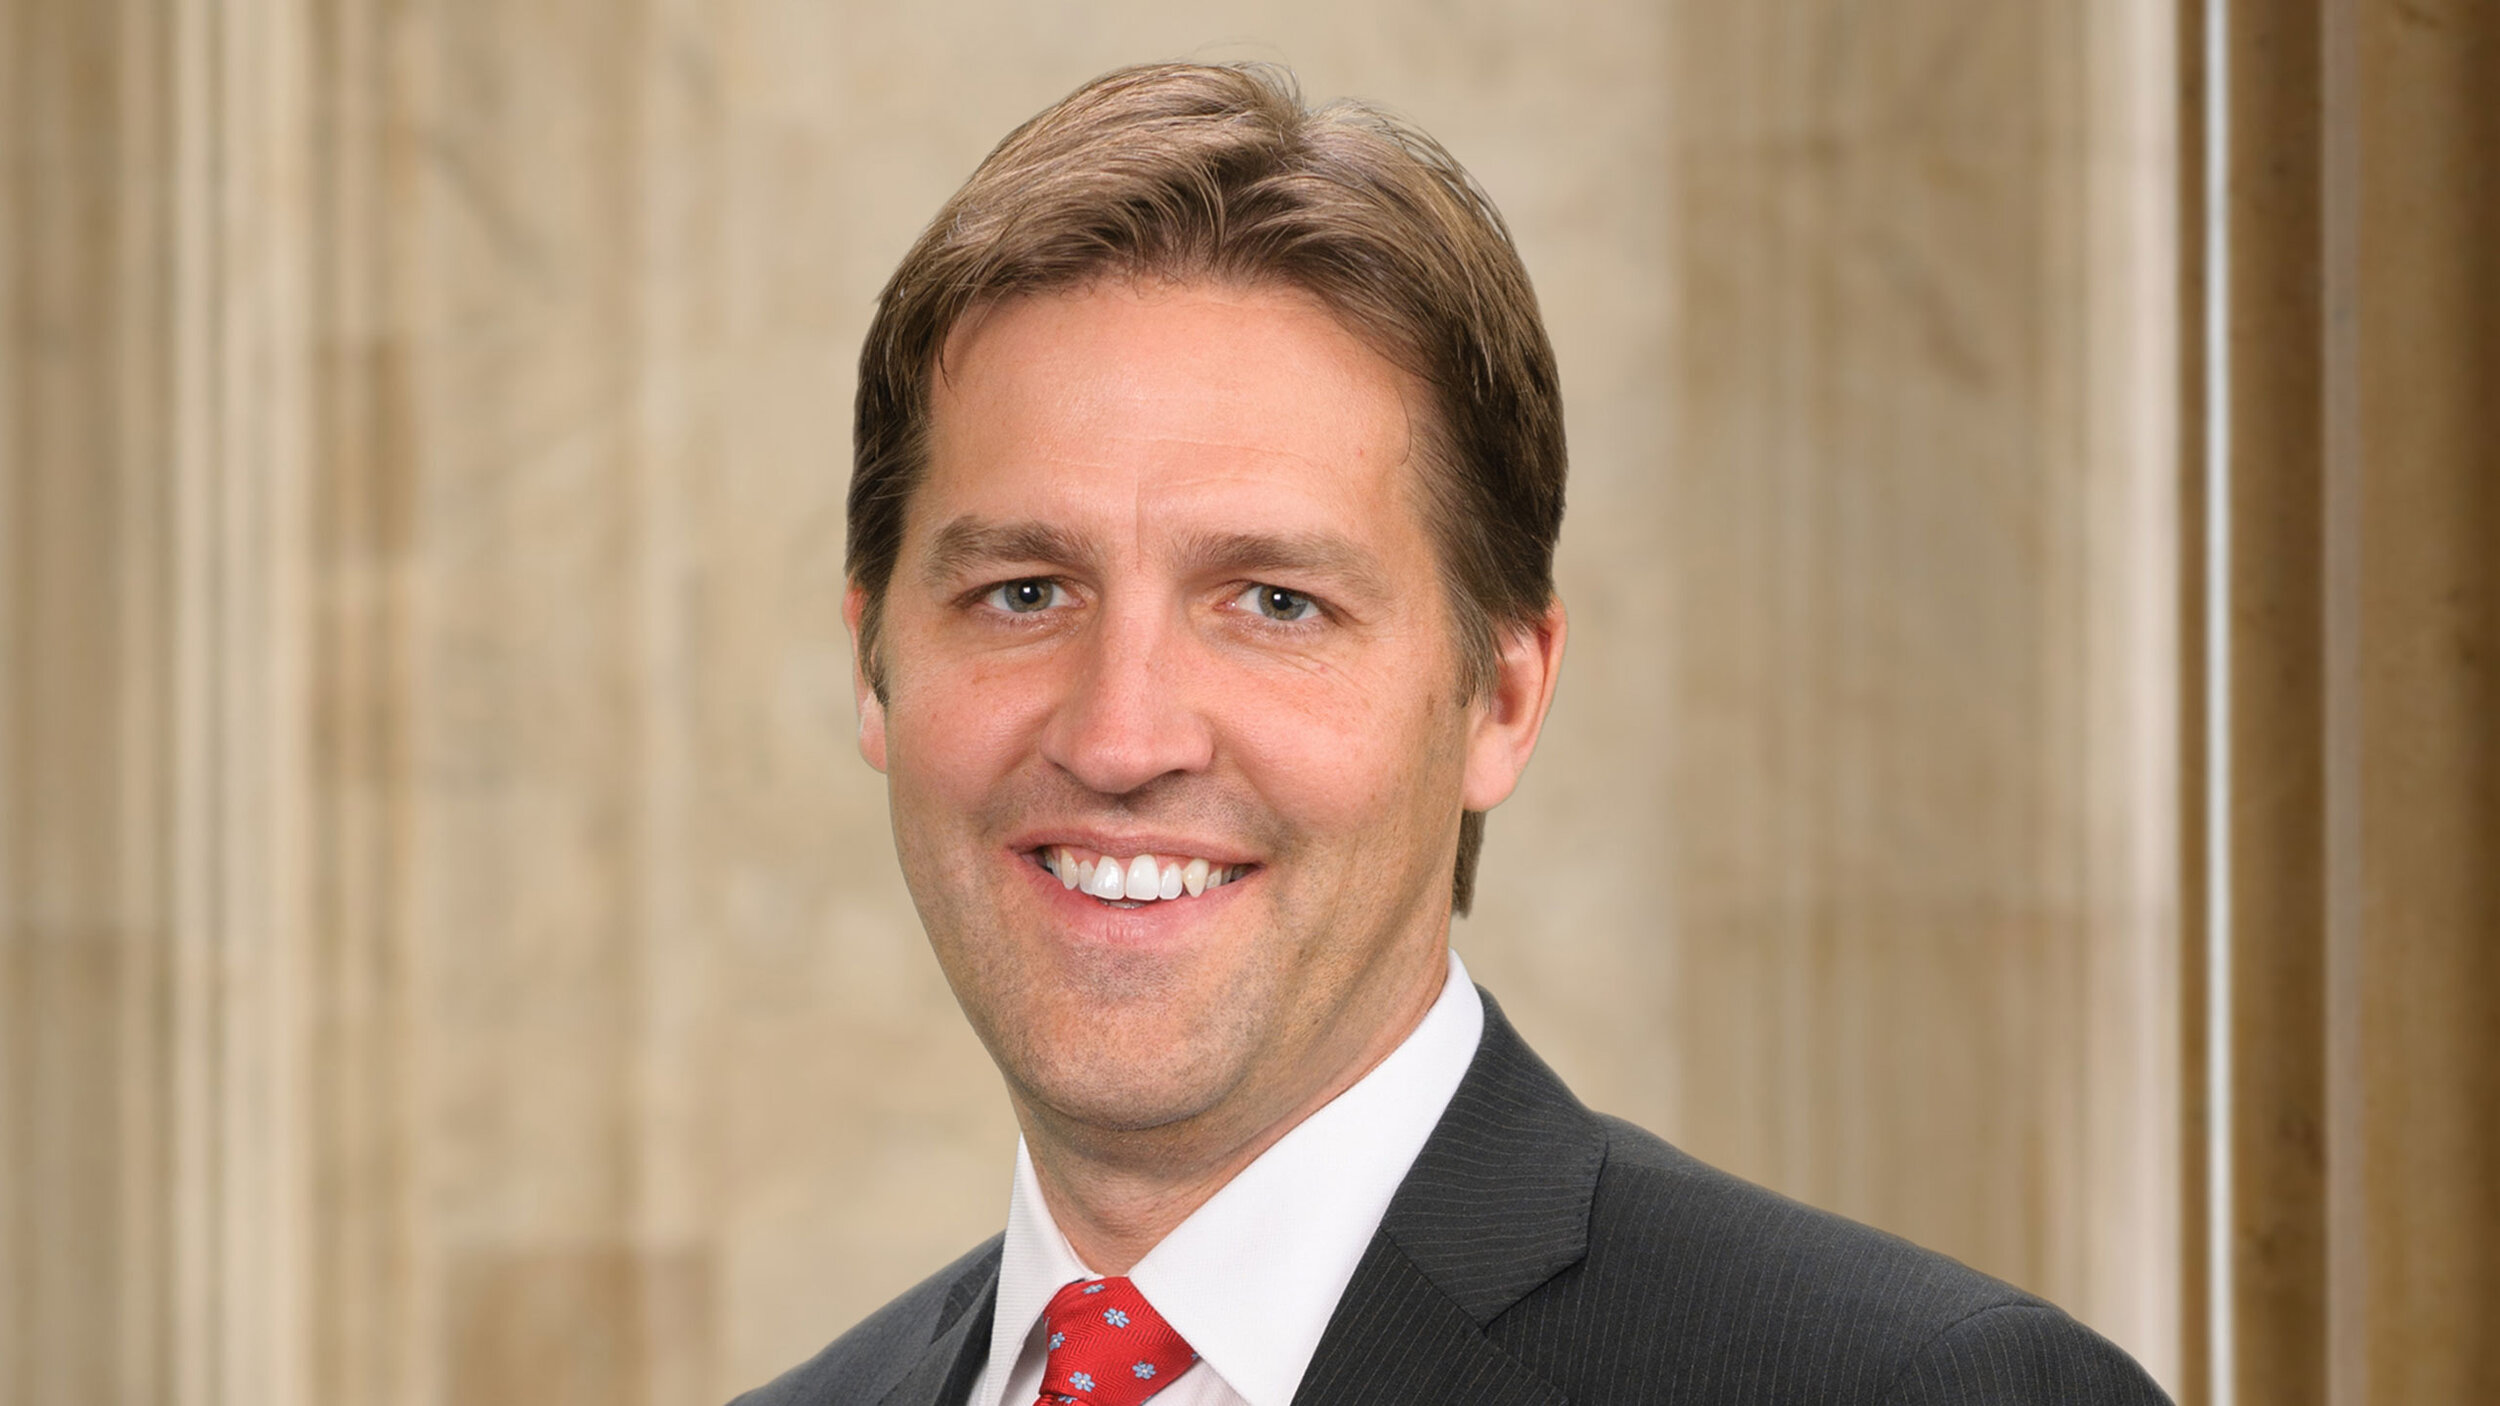 Ben Sasse lied about China sending police to shoot a protestor, which James will show on Friday's Hake Report.